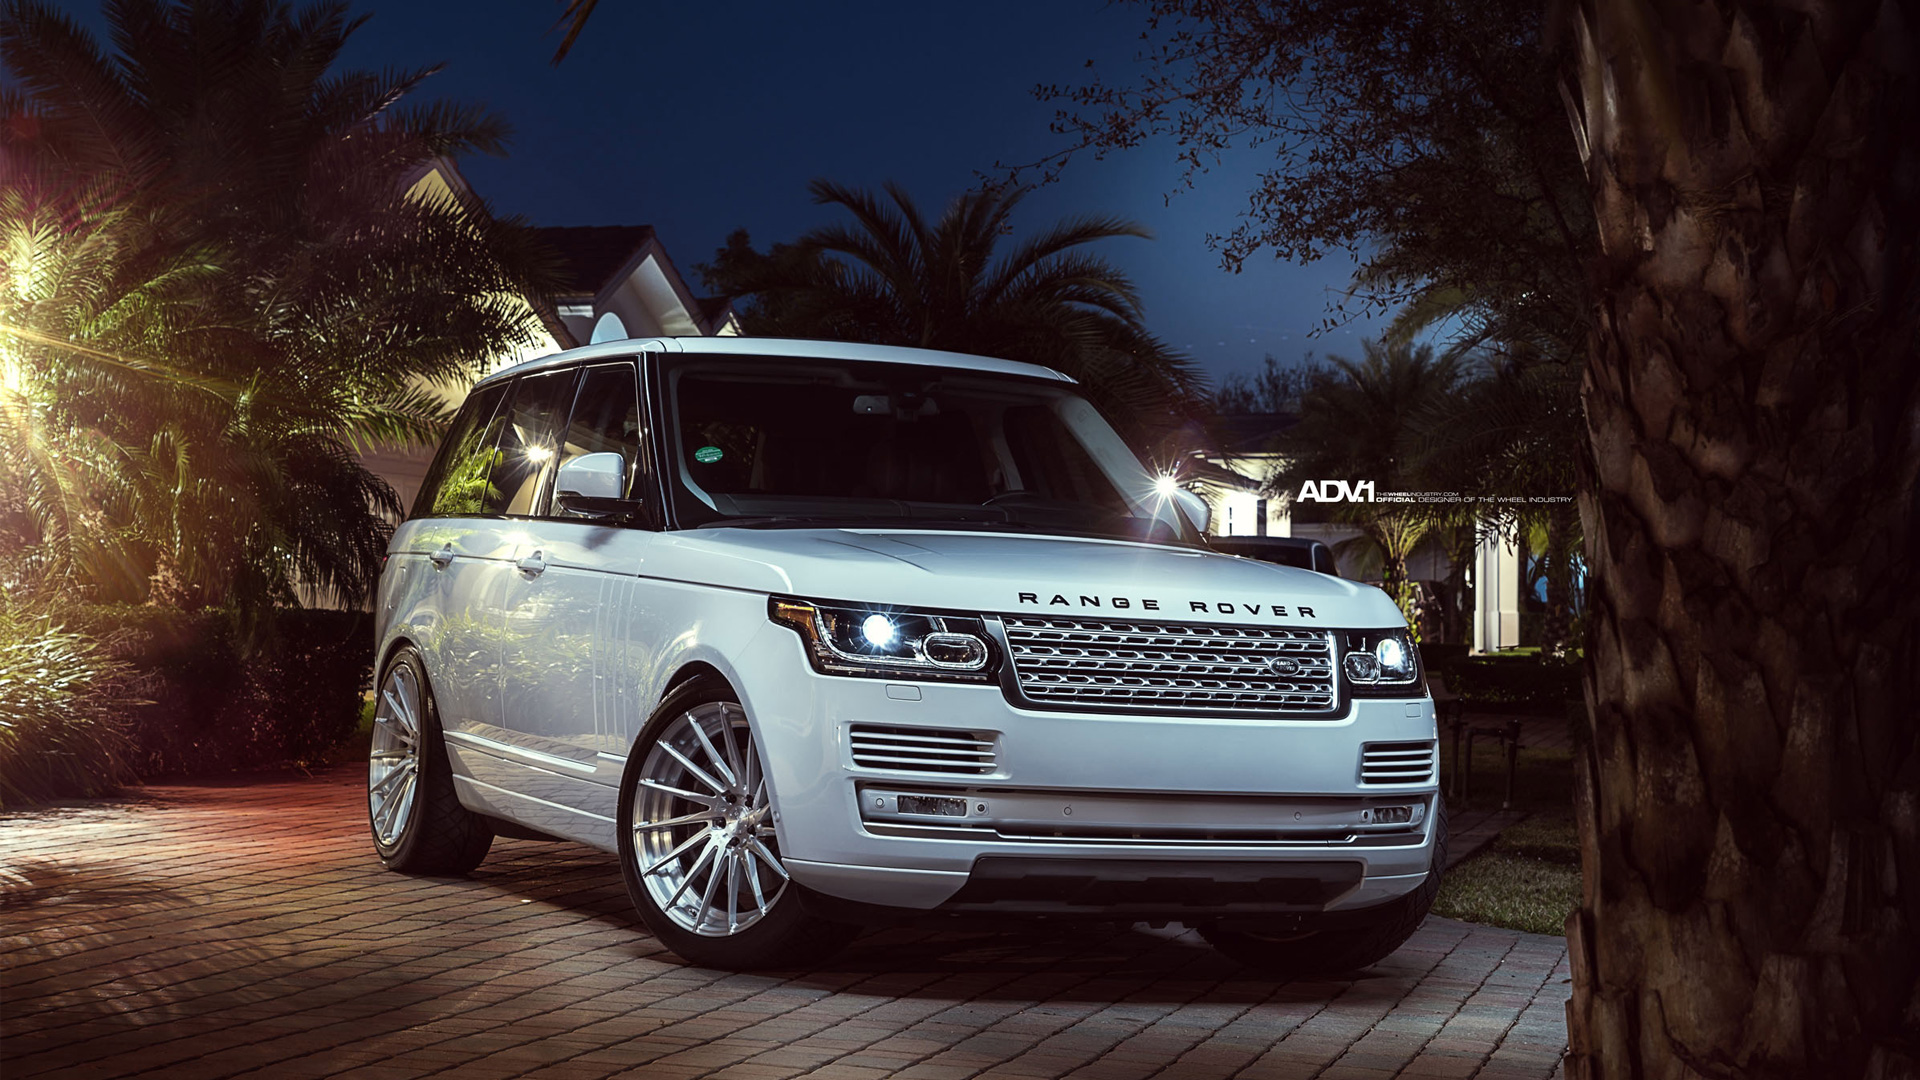 Range Rover Hse Adv15r Wallpaper Hd Car Wallpapers Id